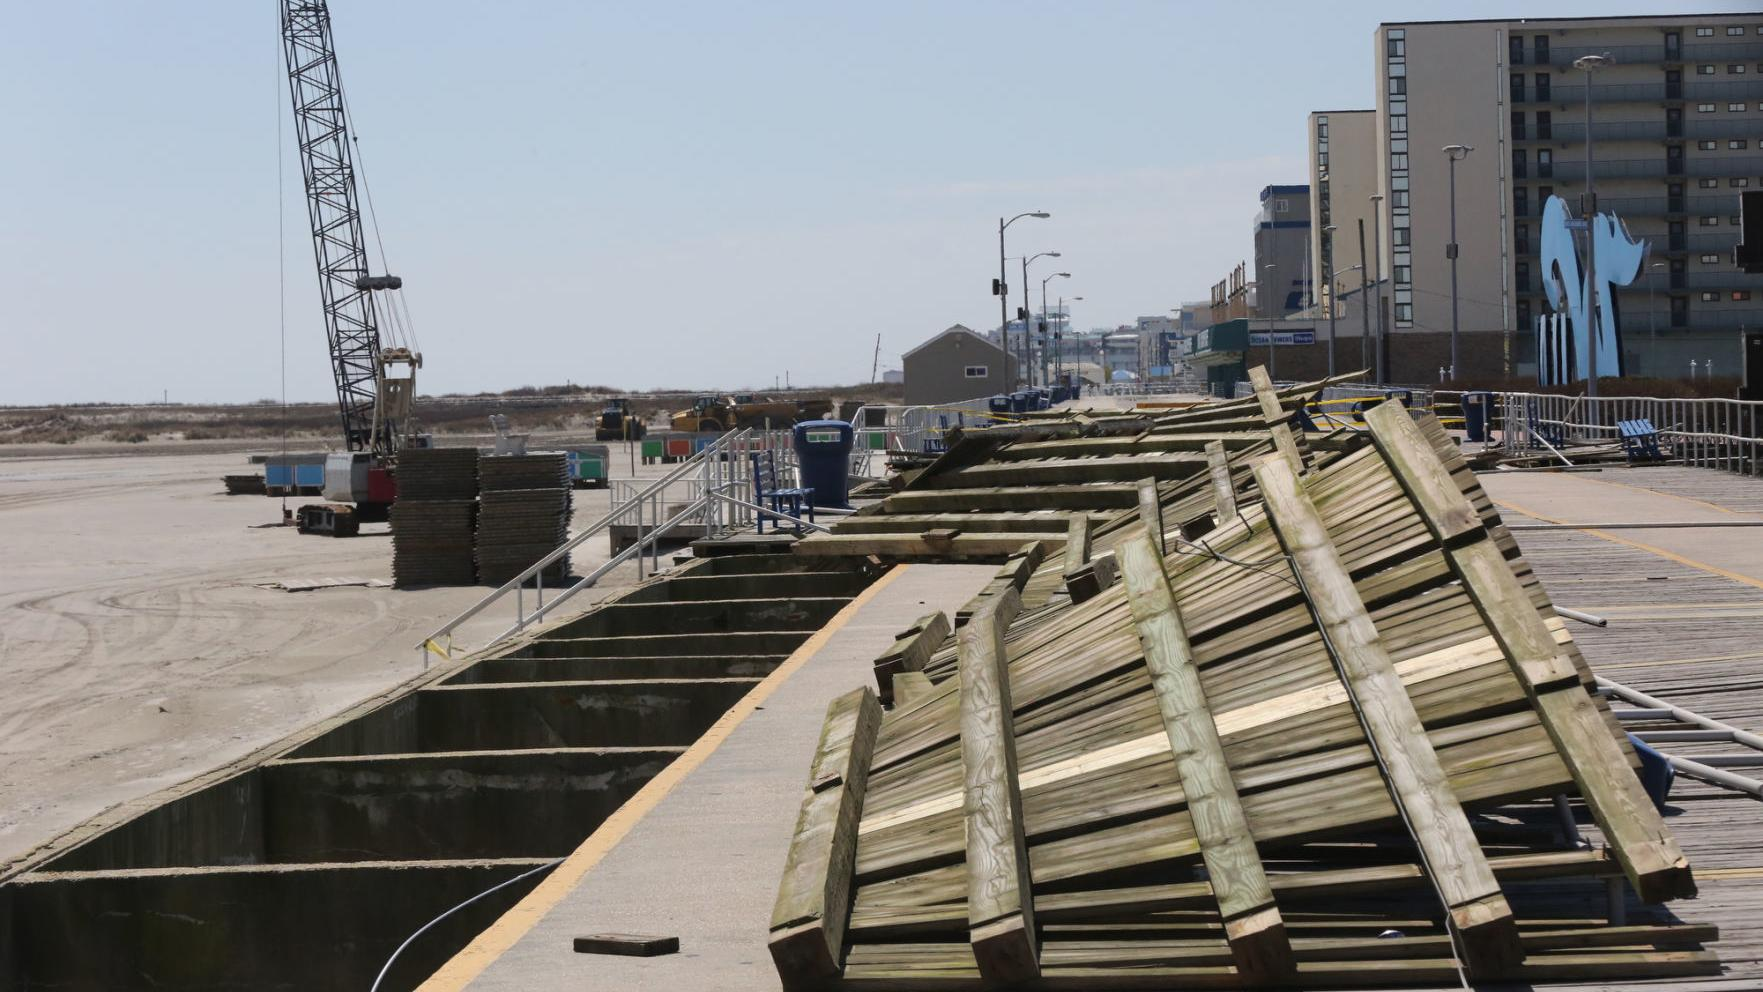 Our view: Fund Jersey Shore oceanfront paths, crucial infrastructure that must be maintained